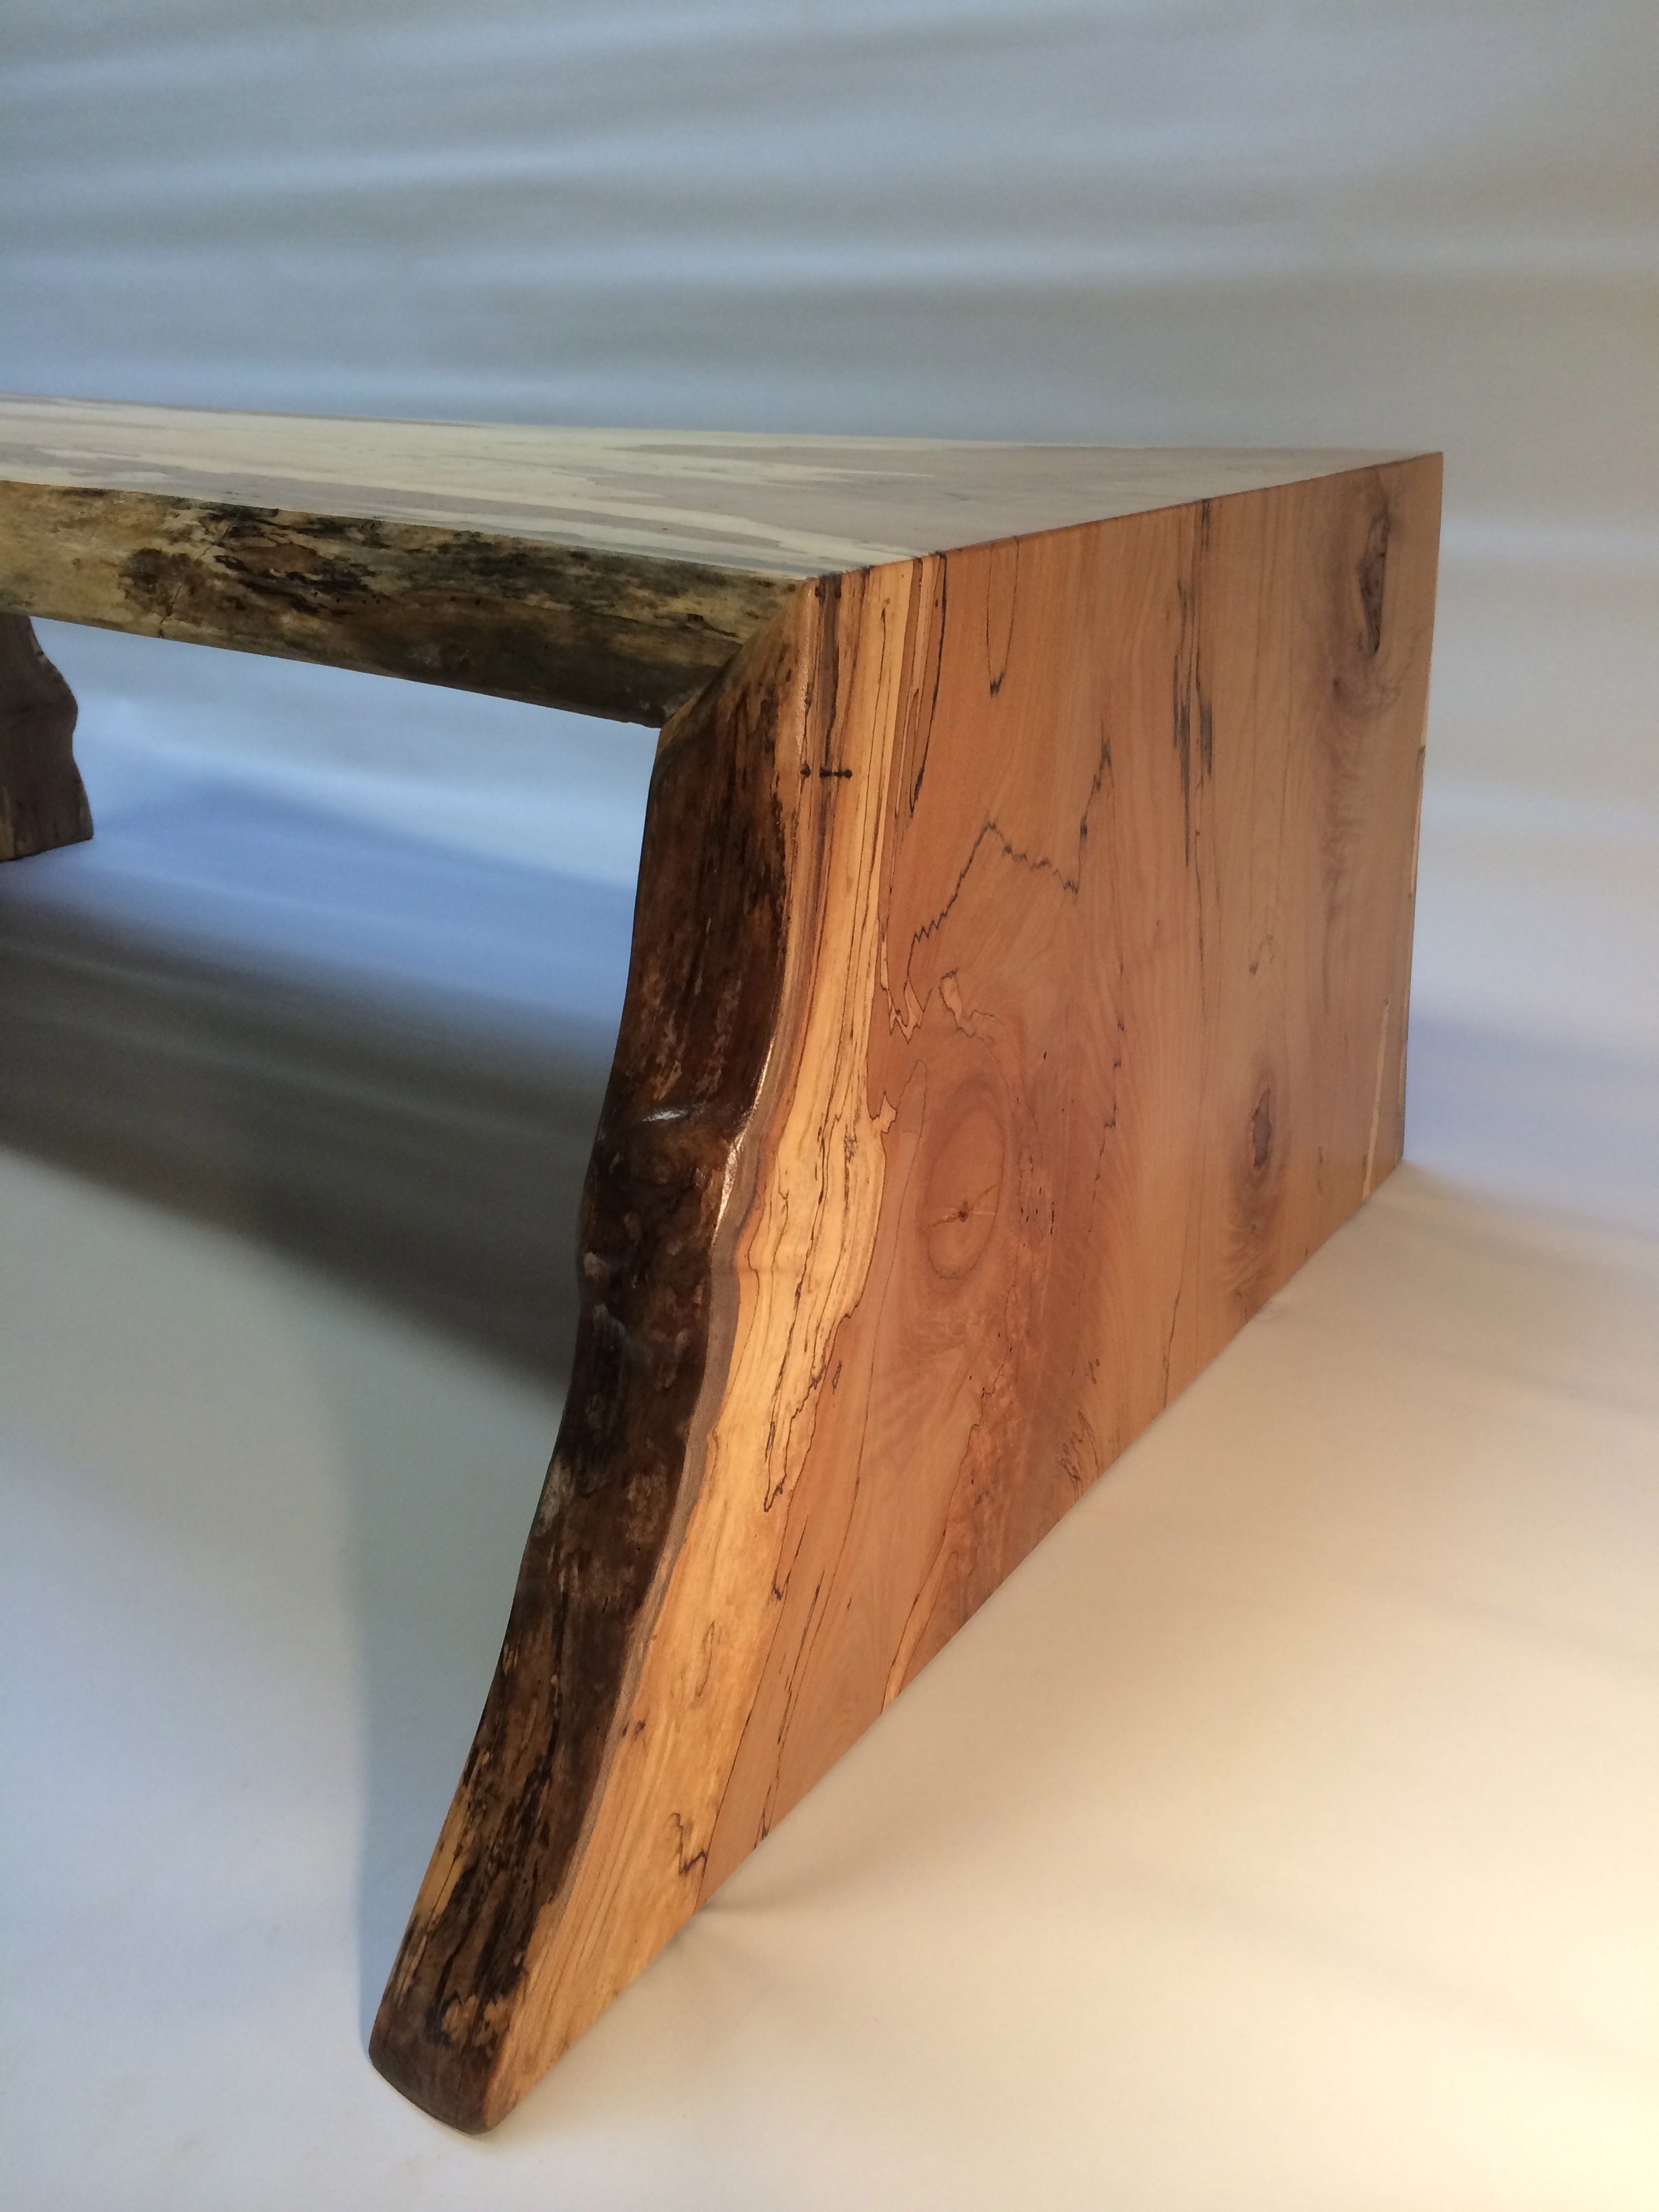 Sycamore Maple Coffee Table The Wood Shop